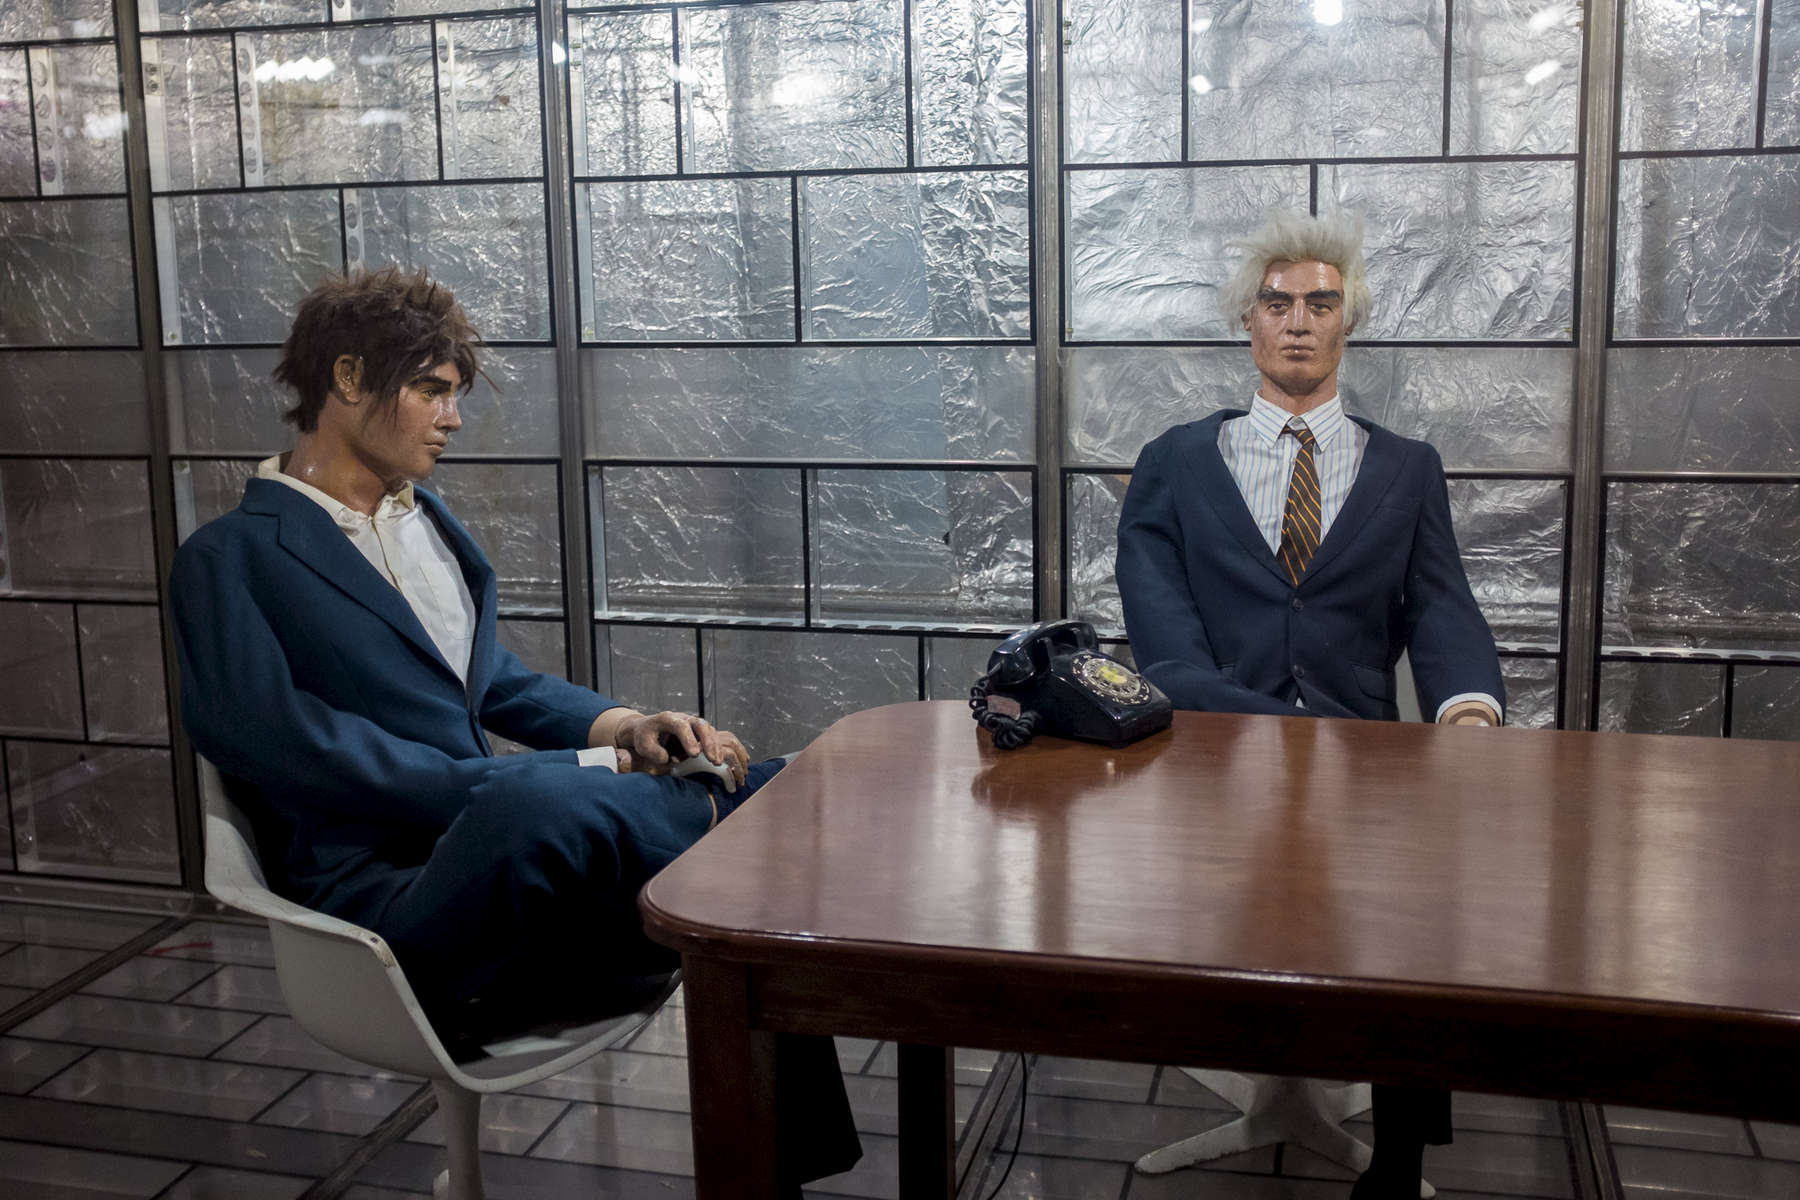 Wax figures representing former US embassy staff inside the so called 'Glassy room for secret negotiations' in Tehran.